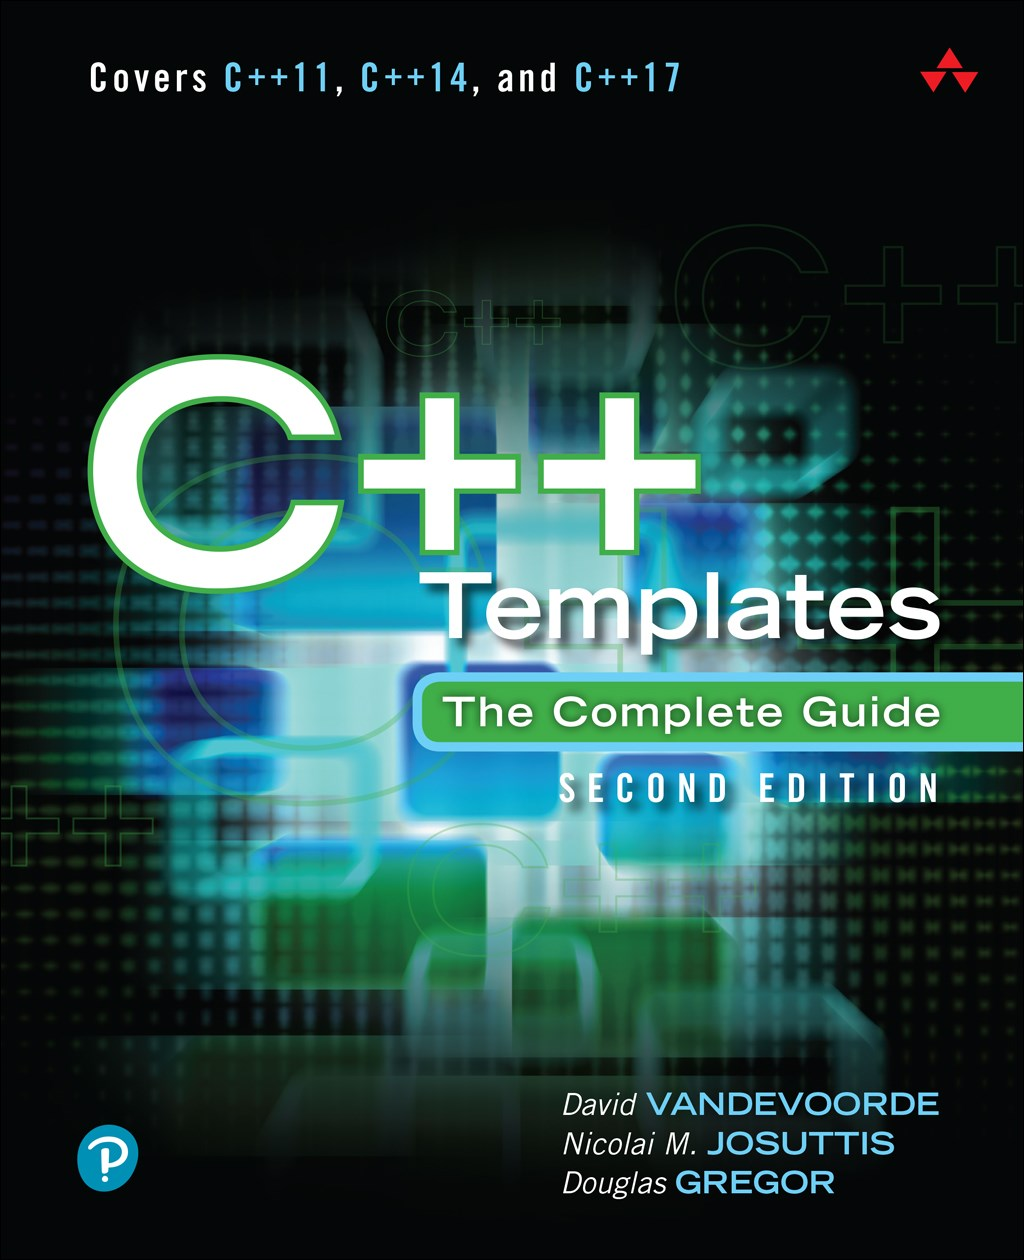 C++ Templates, Second Edition